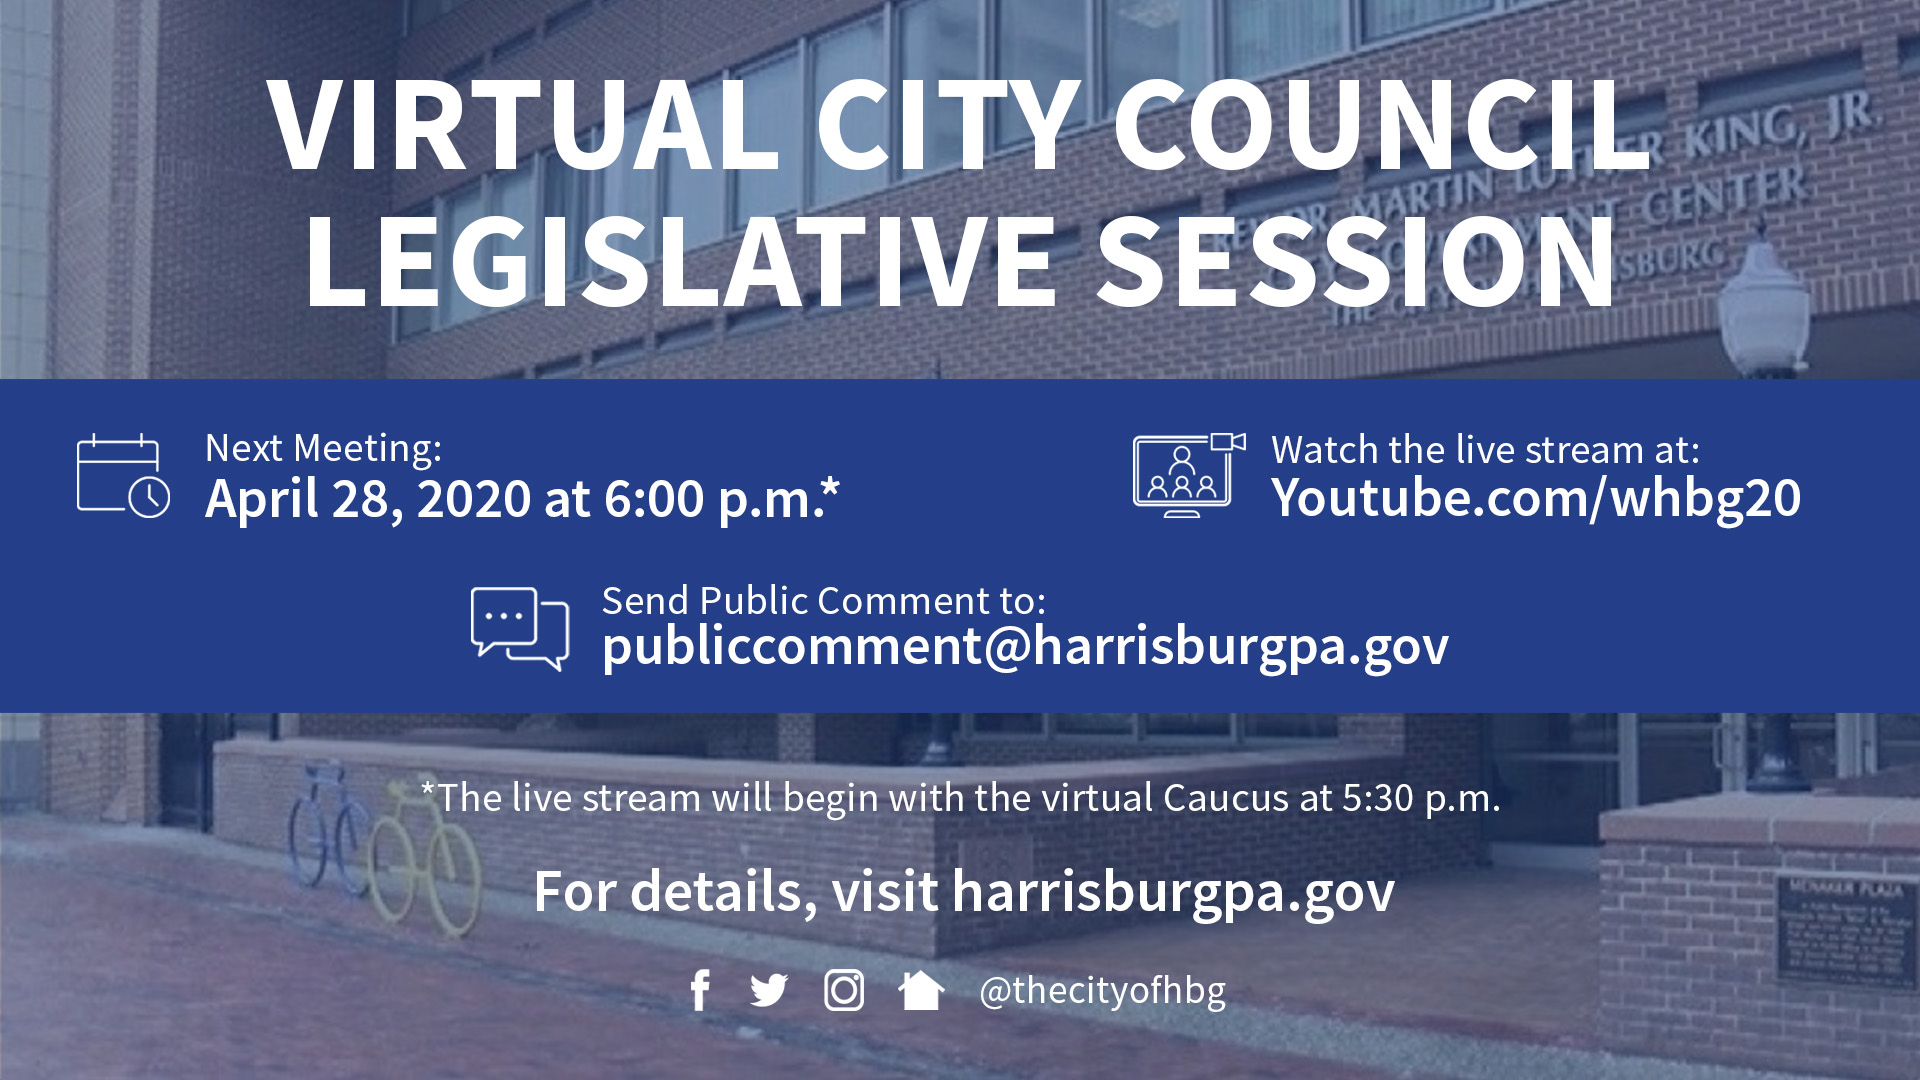 CITY COUNCIL TO HOLD VIRTUAL LEGISLATIVE SESSION TODAY